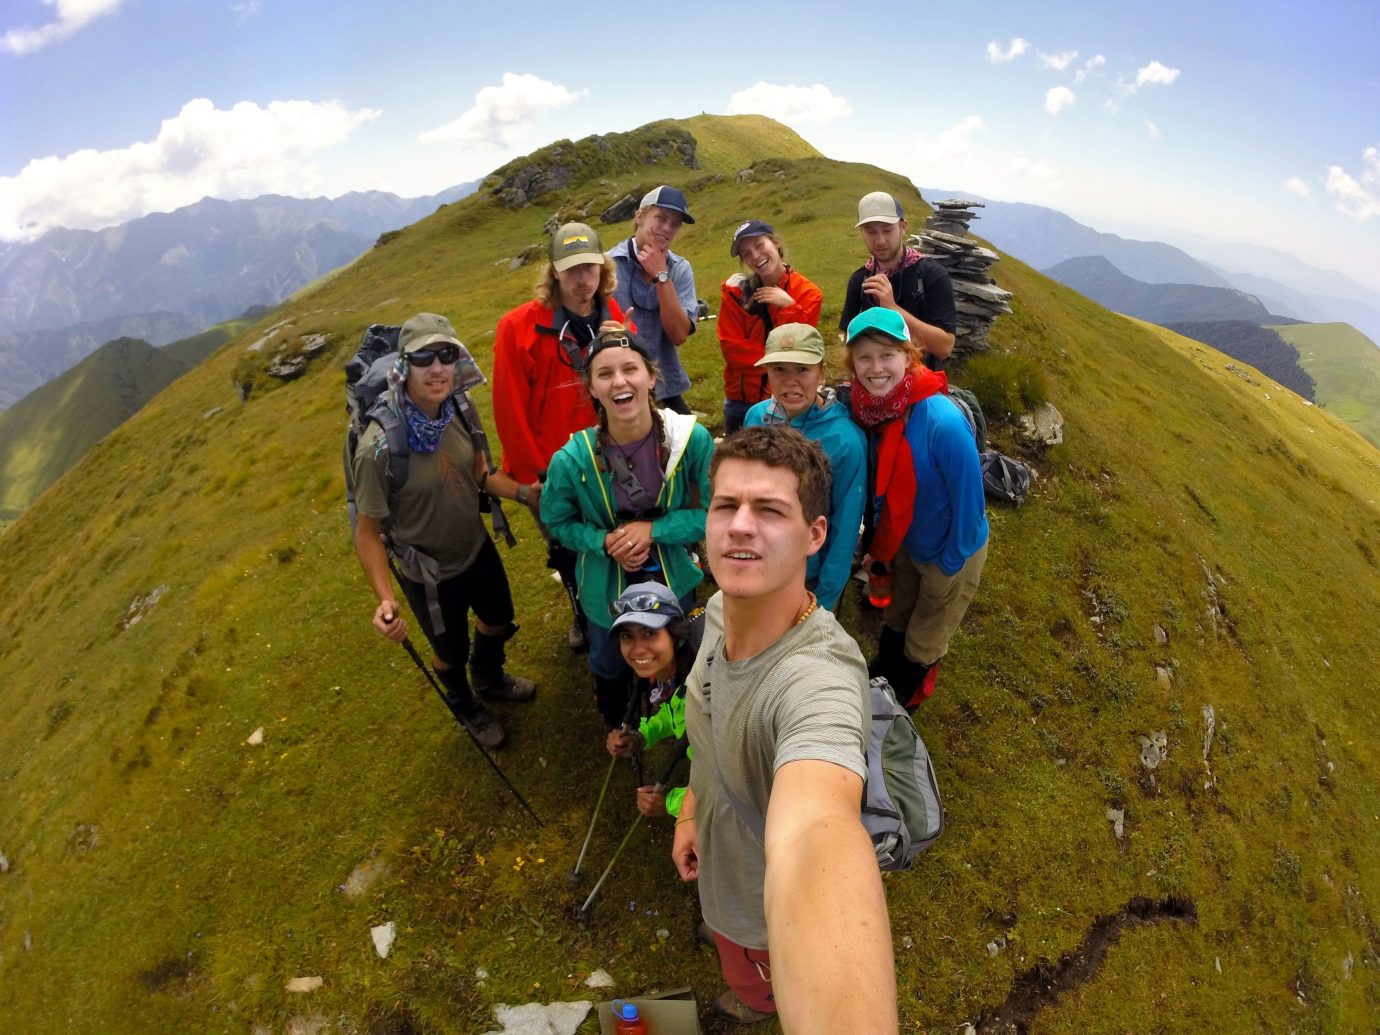 Trip Ideas sky outdoor mountain person grass Nature mountainous landforms sports hill ridge Adventure people mountaineering fell mountain range posing climbing group walking extreme sport hiking summit backpacking hillside highland